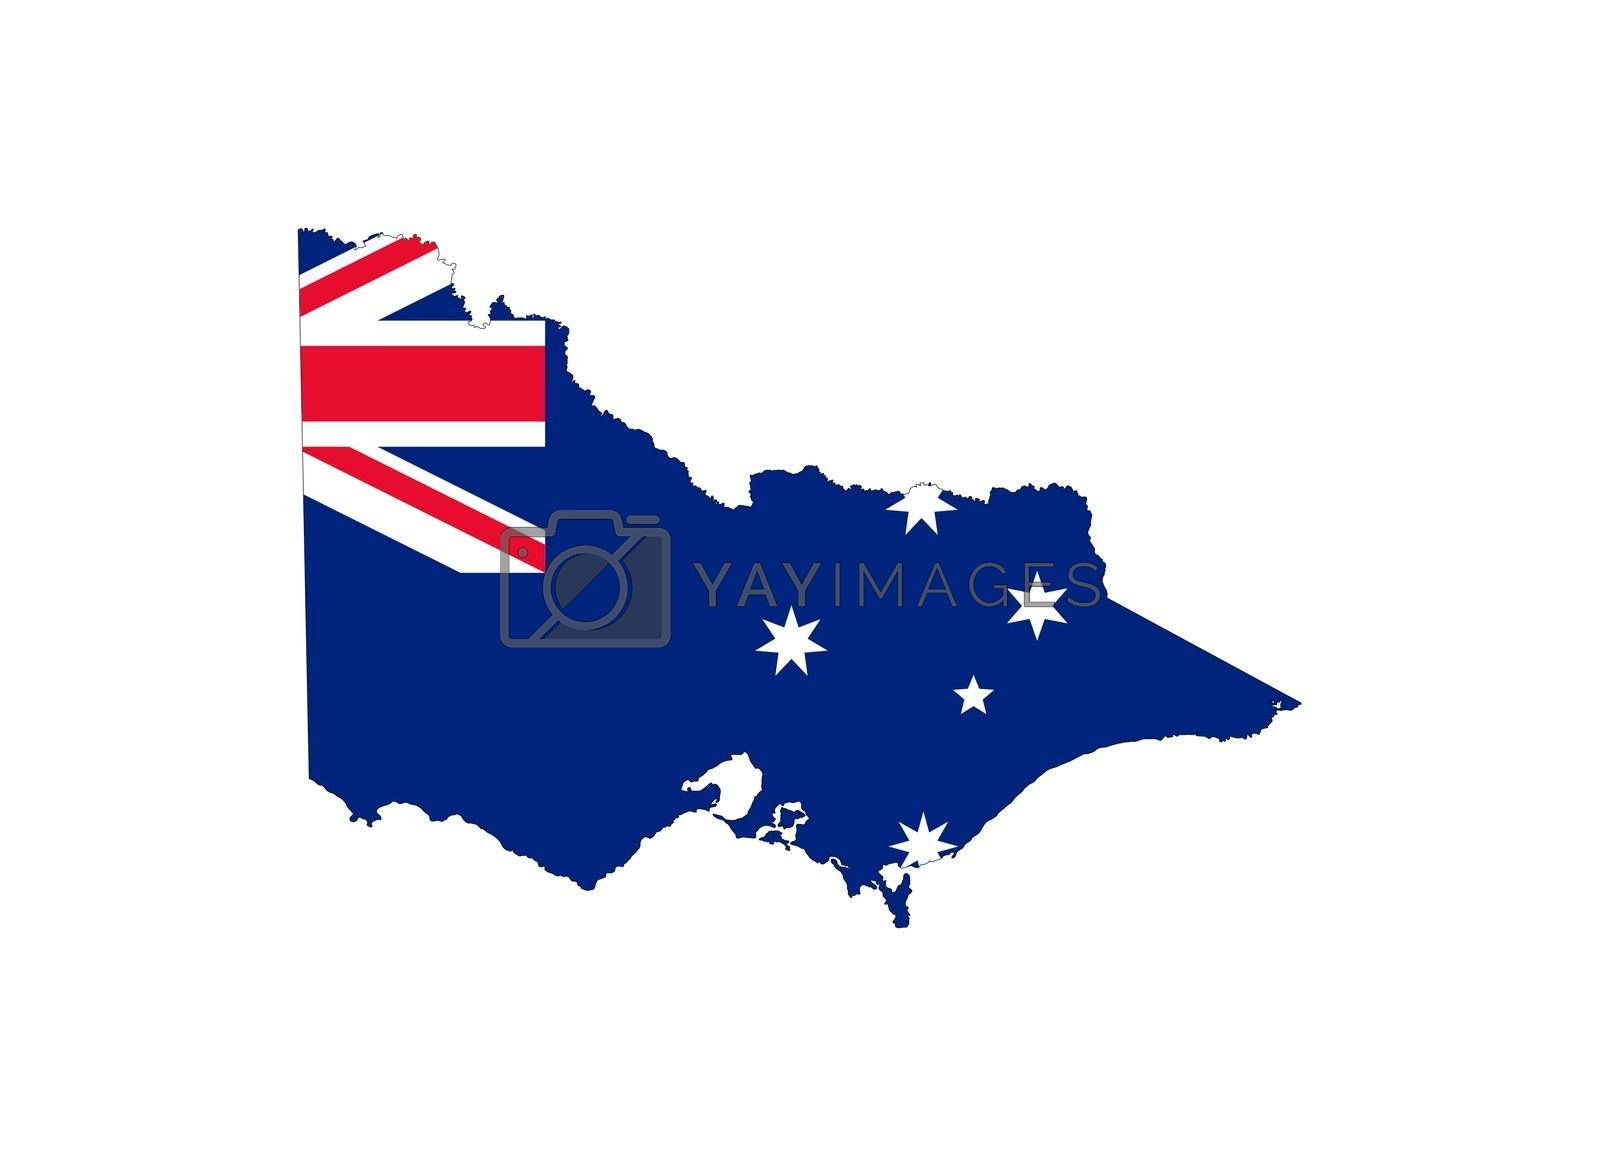 State flag of Victoria, Australia on map; isolated on white background.